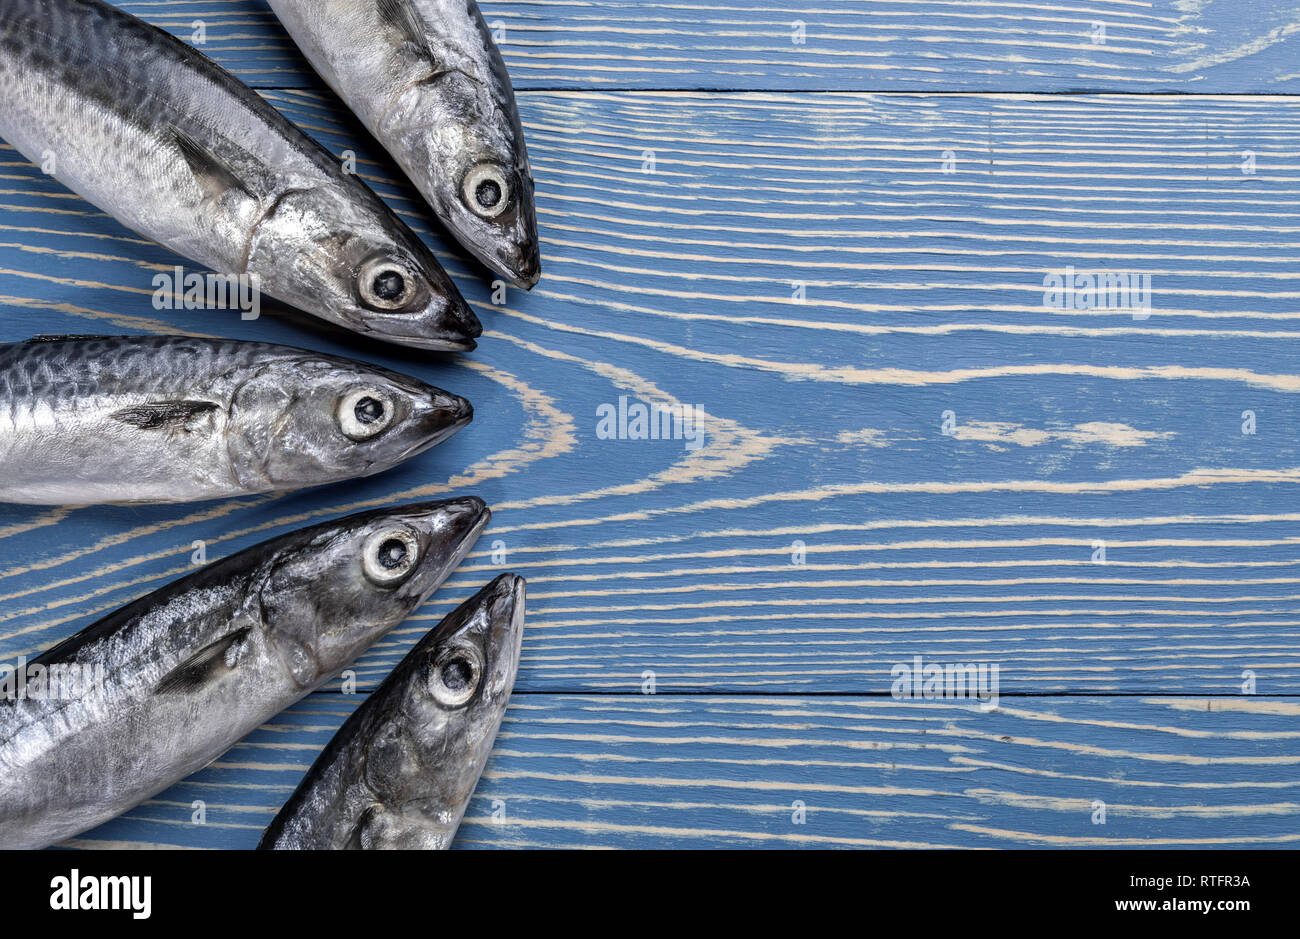 Five mackerel fishes laid out on painted blue wooden background.  Decolored image. - Stock Image